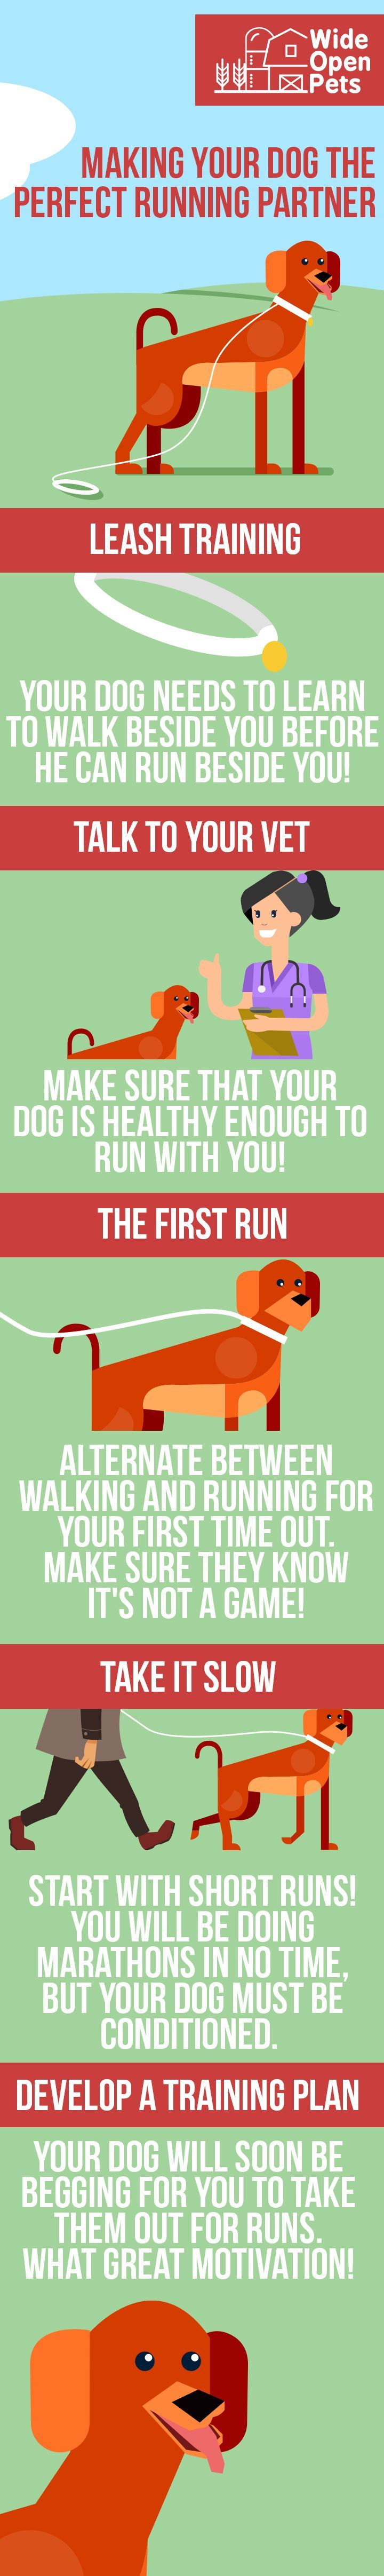 Do you have an energetic dog? Keep both you and your pup in shape with these tips on turning your dog into the perfect running partner.  // KaufmannsPuppyTraining.com // Kaufmann's Puppy Training // dog training // dog love // puppy love